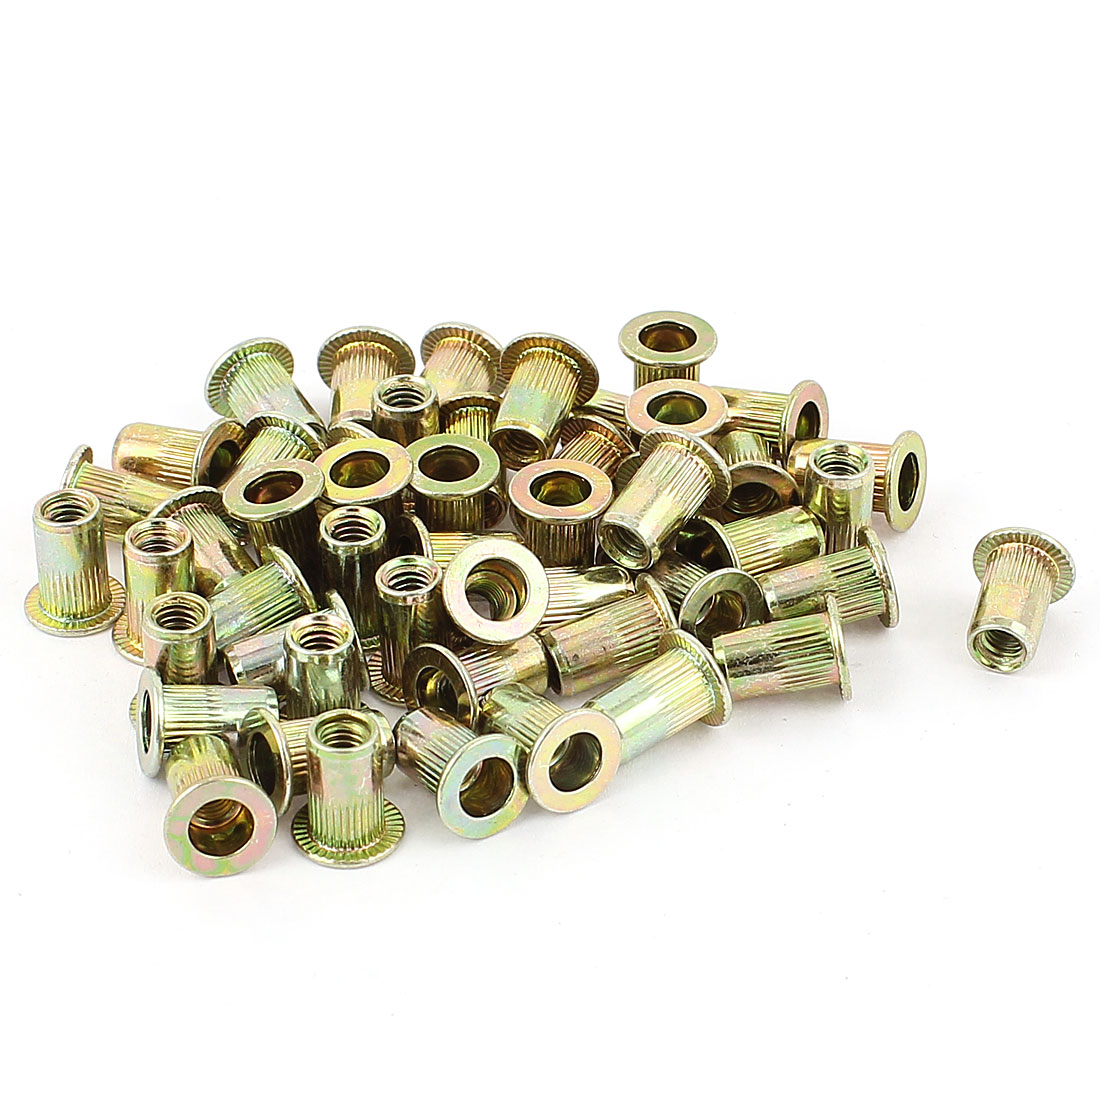 4mm Thread Dia 11mm Long Metal Rivet Nut Insert Nutsert Gold Tone 50Pcs